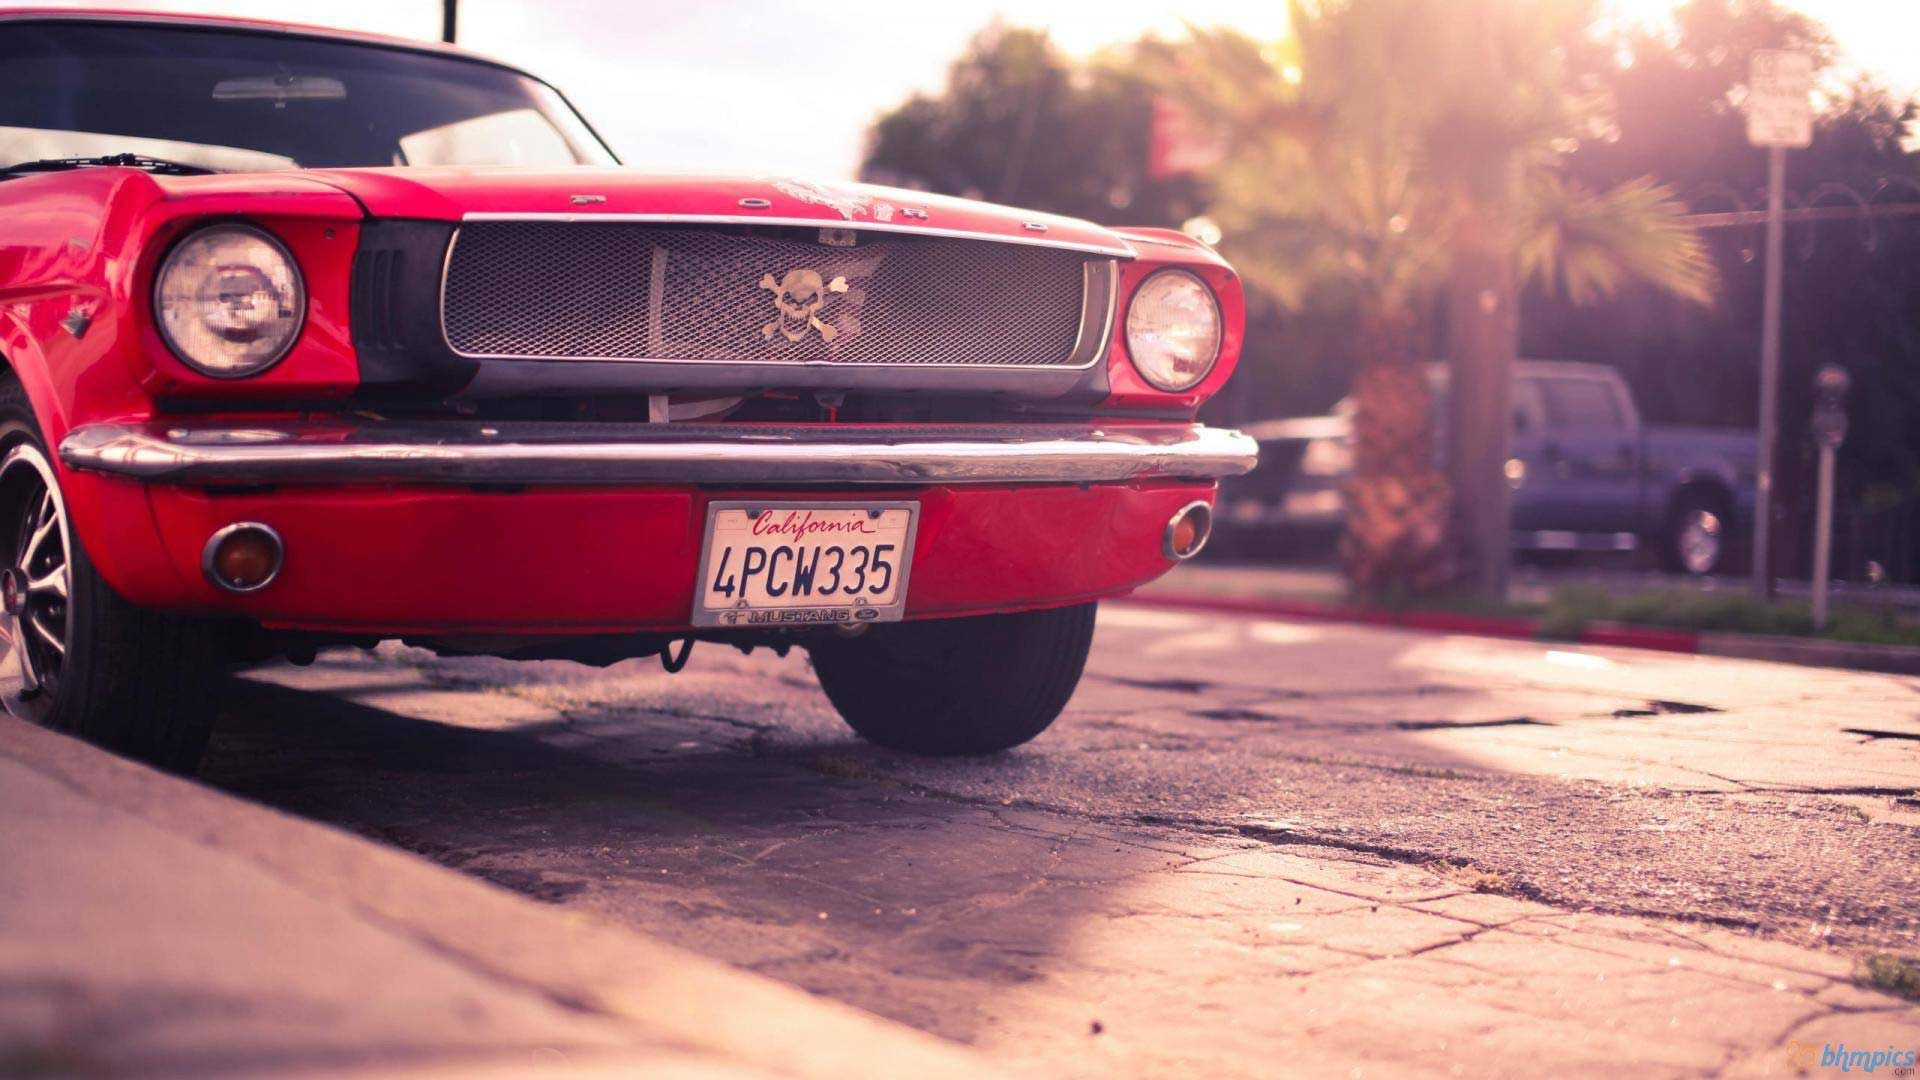 Classic Cars Hd Wallpapers Vintage Cars Hd Widescreen